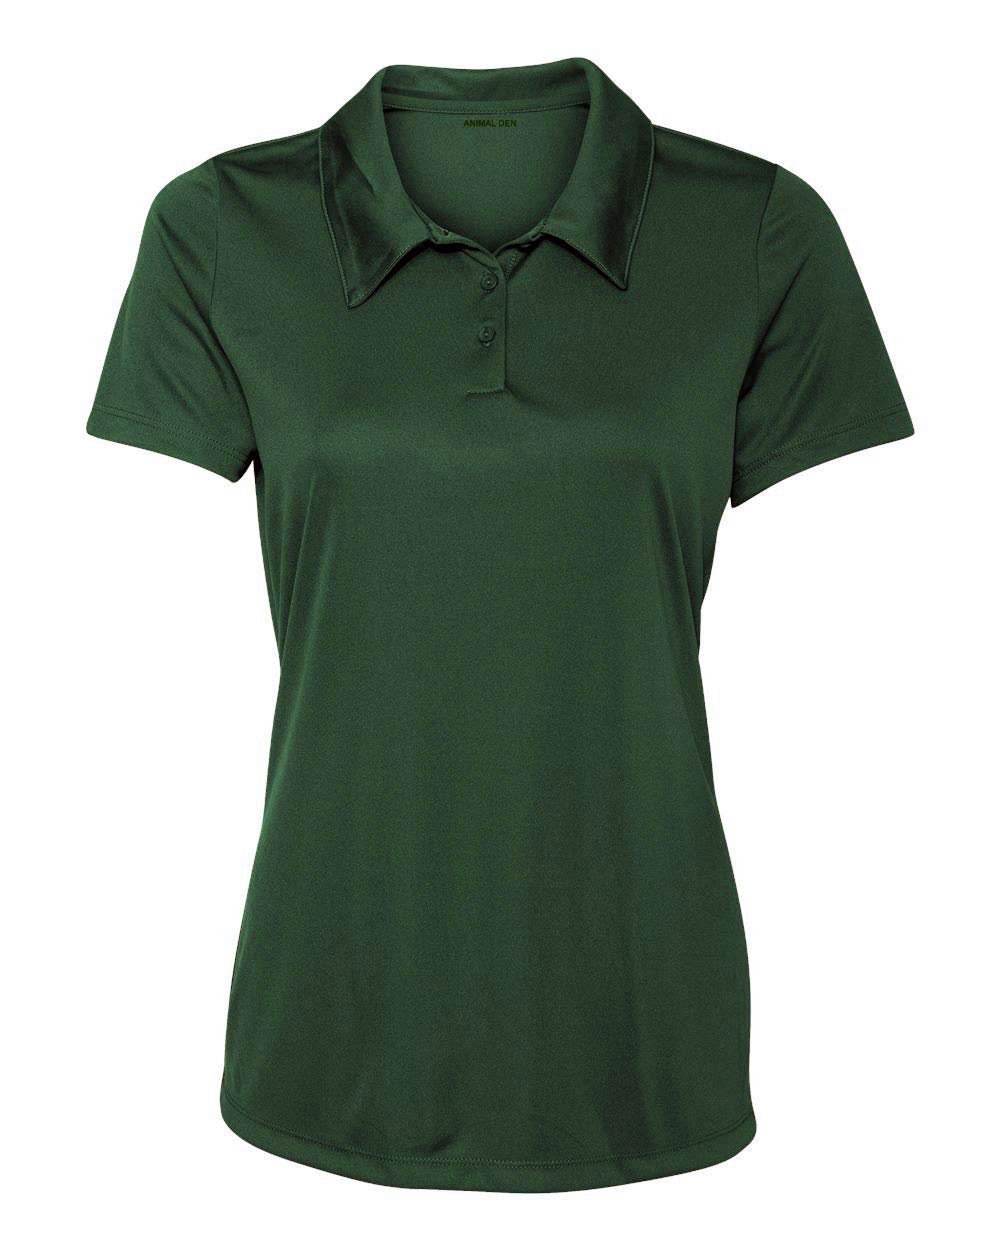 Animal Den Women's Dry-Fit Golf Polo Shirts 3-Button Golf Polo's in 20 Colors XS-3XL Shirt Forest-S